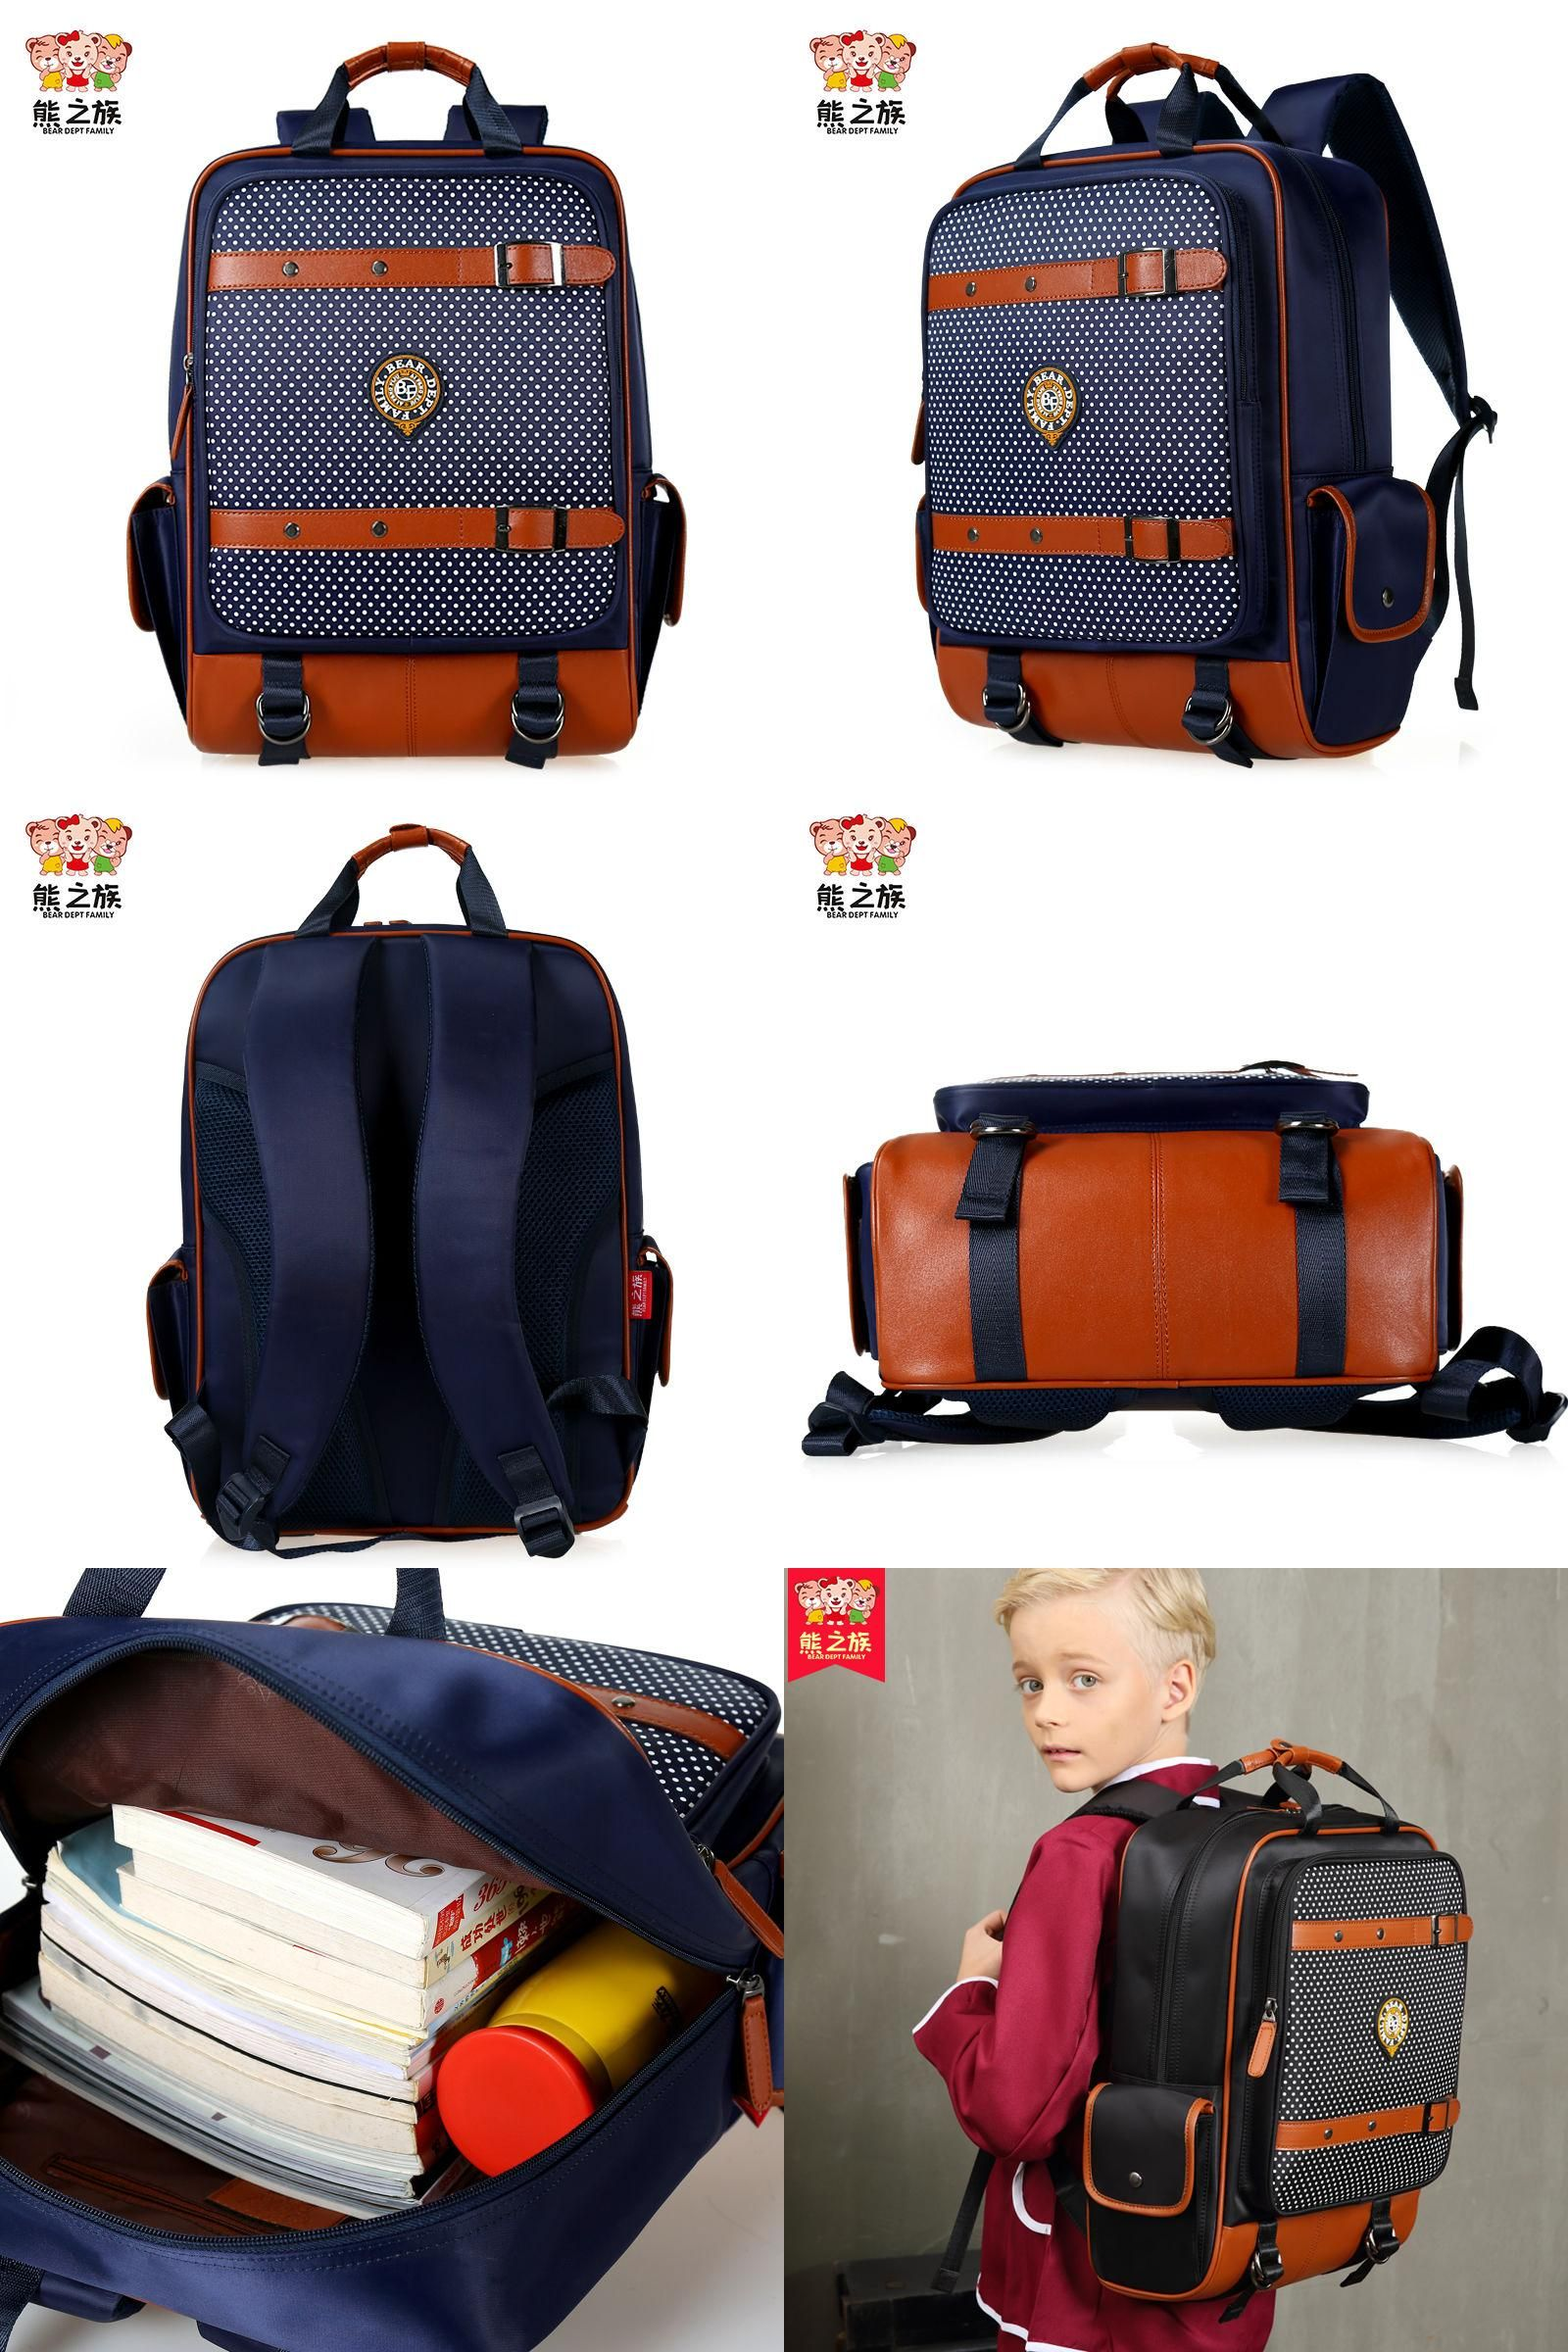 Visit to Buy] Orthopedic Primary School Bags Students Boys Book ...